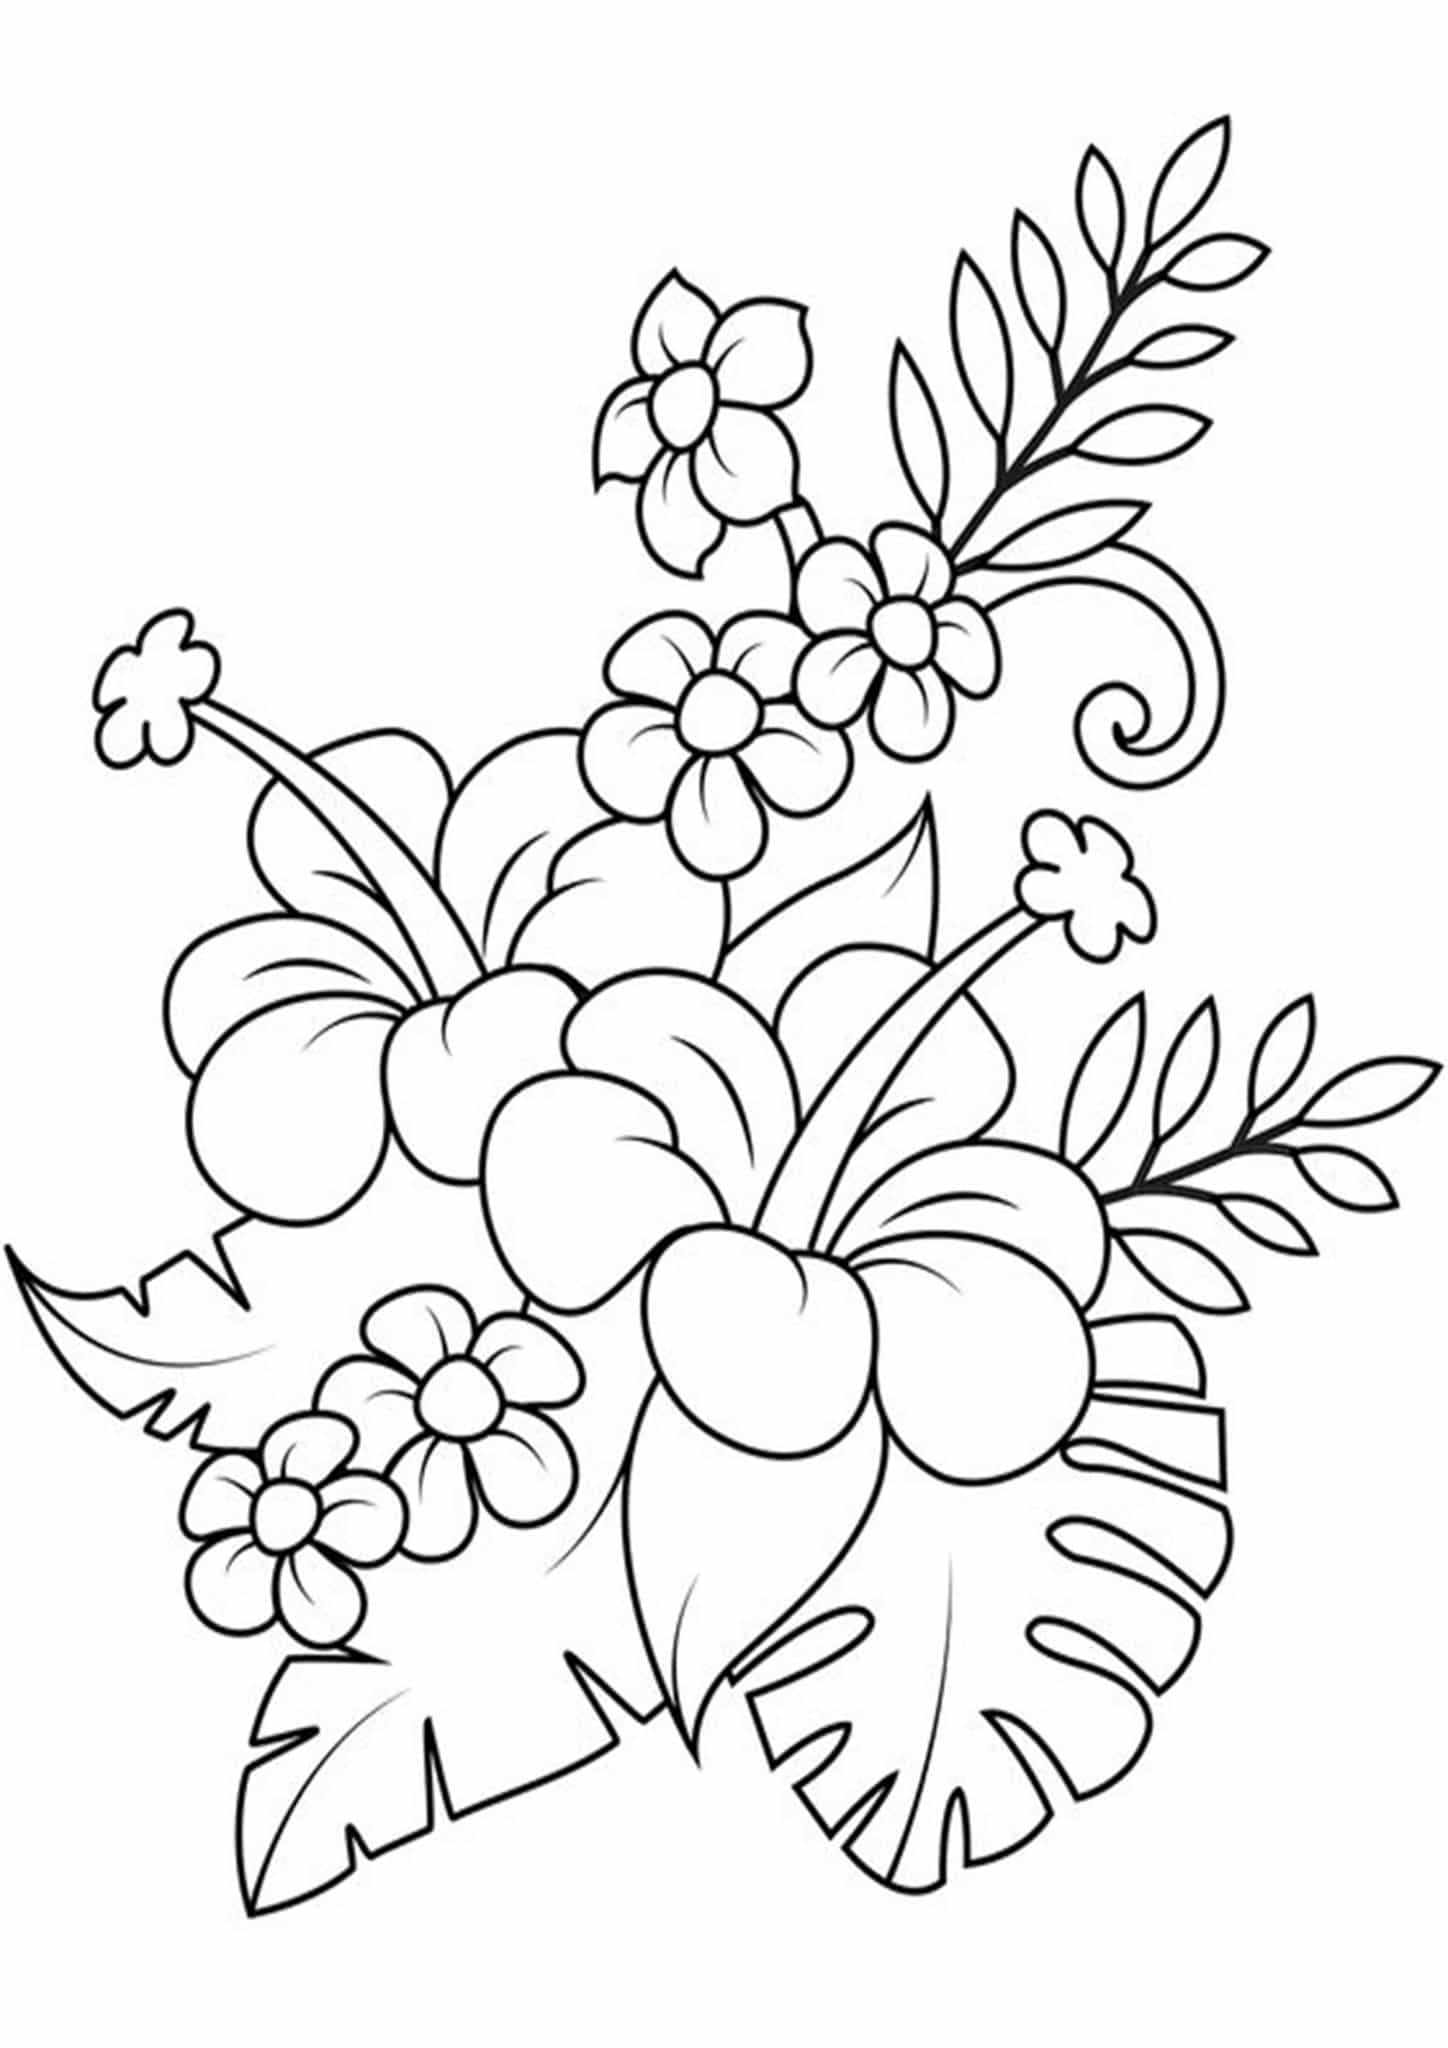 coloring pages about flowers free printable flower coloring pages for kids best about flowers pages coloring